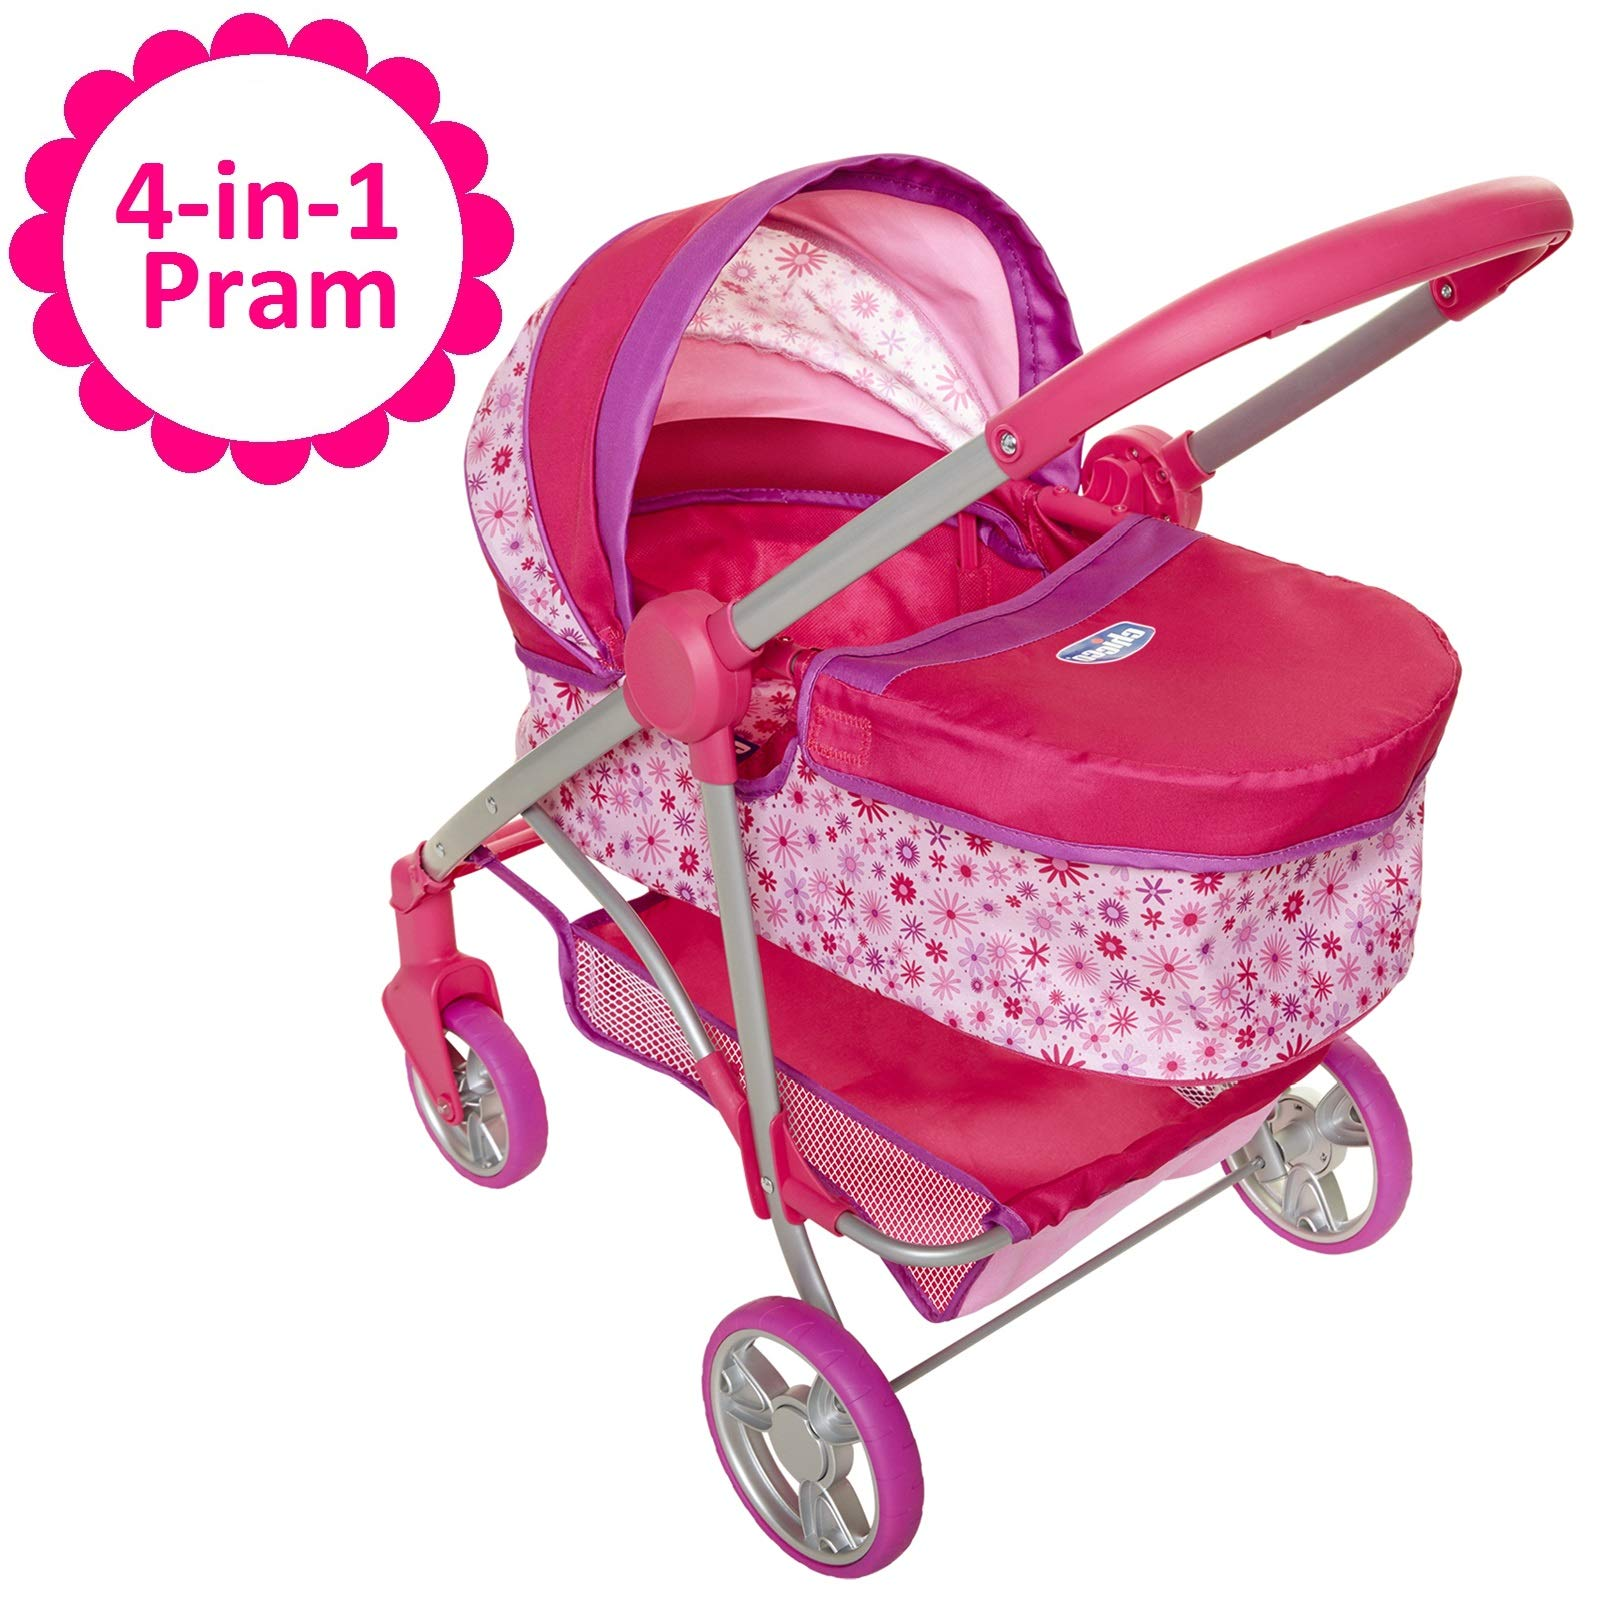 Baby Doll Stroller, 4-in-1 Pram/Stroller Gift Set, For Baby Dollsup To 18'' Tall, Baby Doll Stroller/Pram Play Set, For Girls Ages 3, 4, 5 & 6 Years Old by Chicco